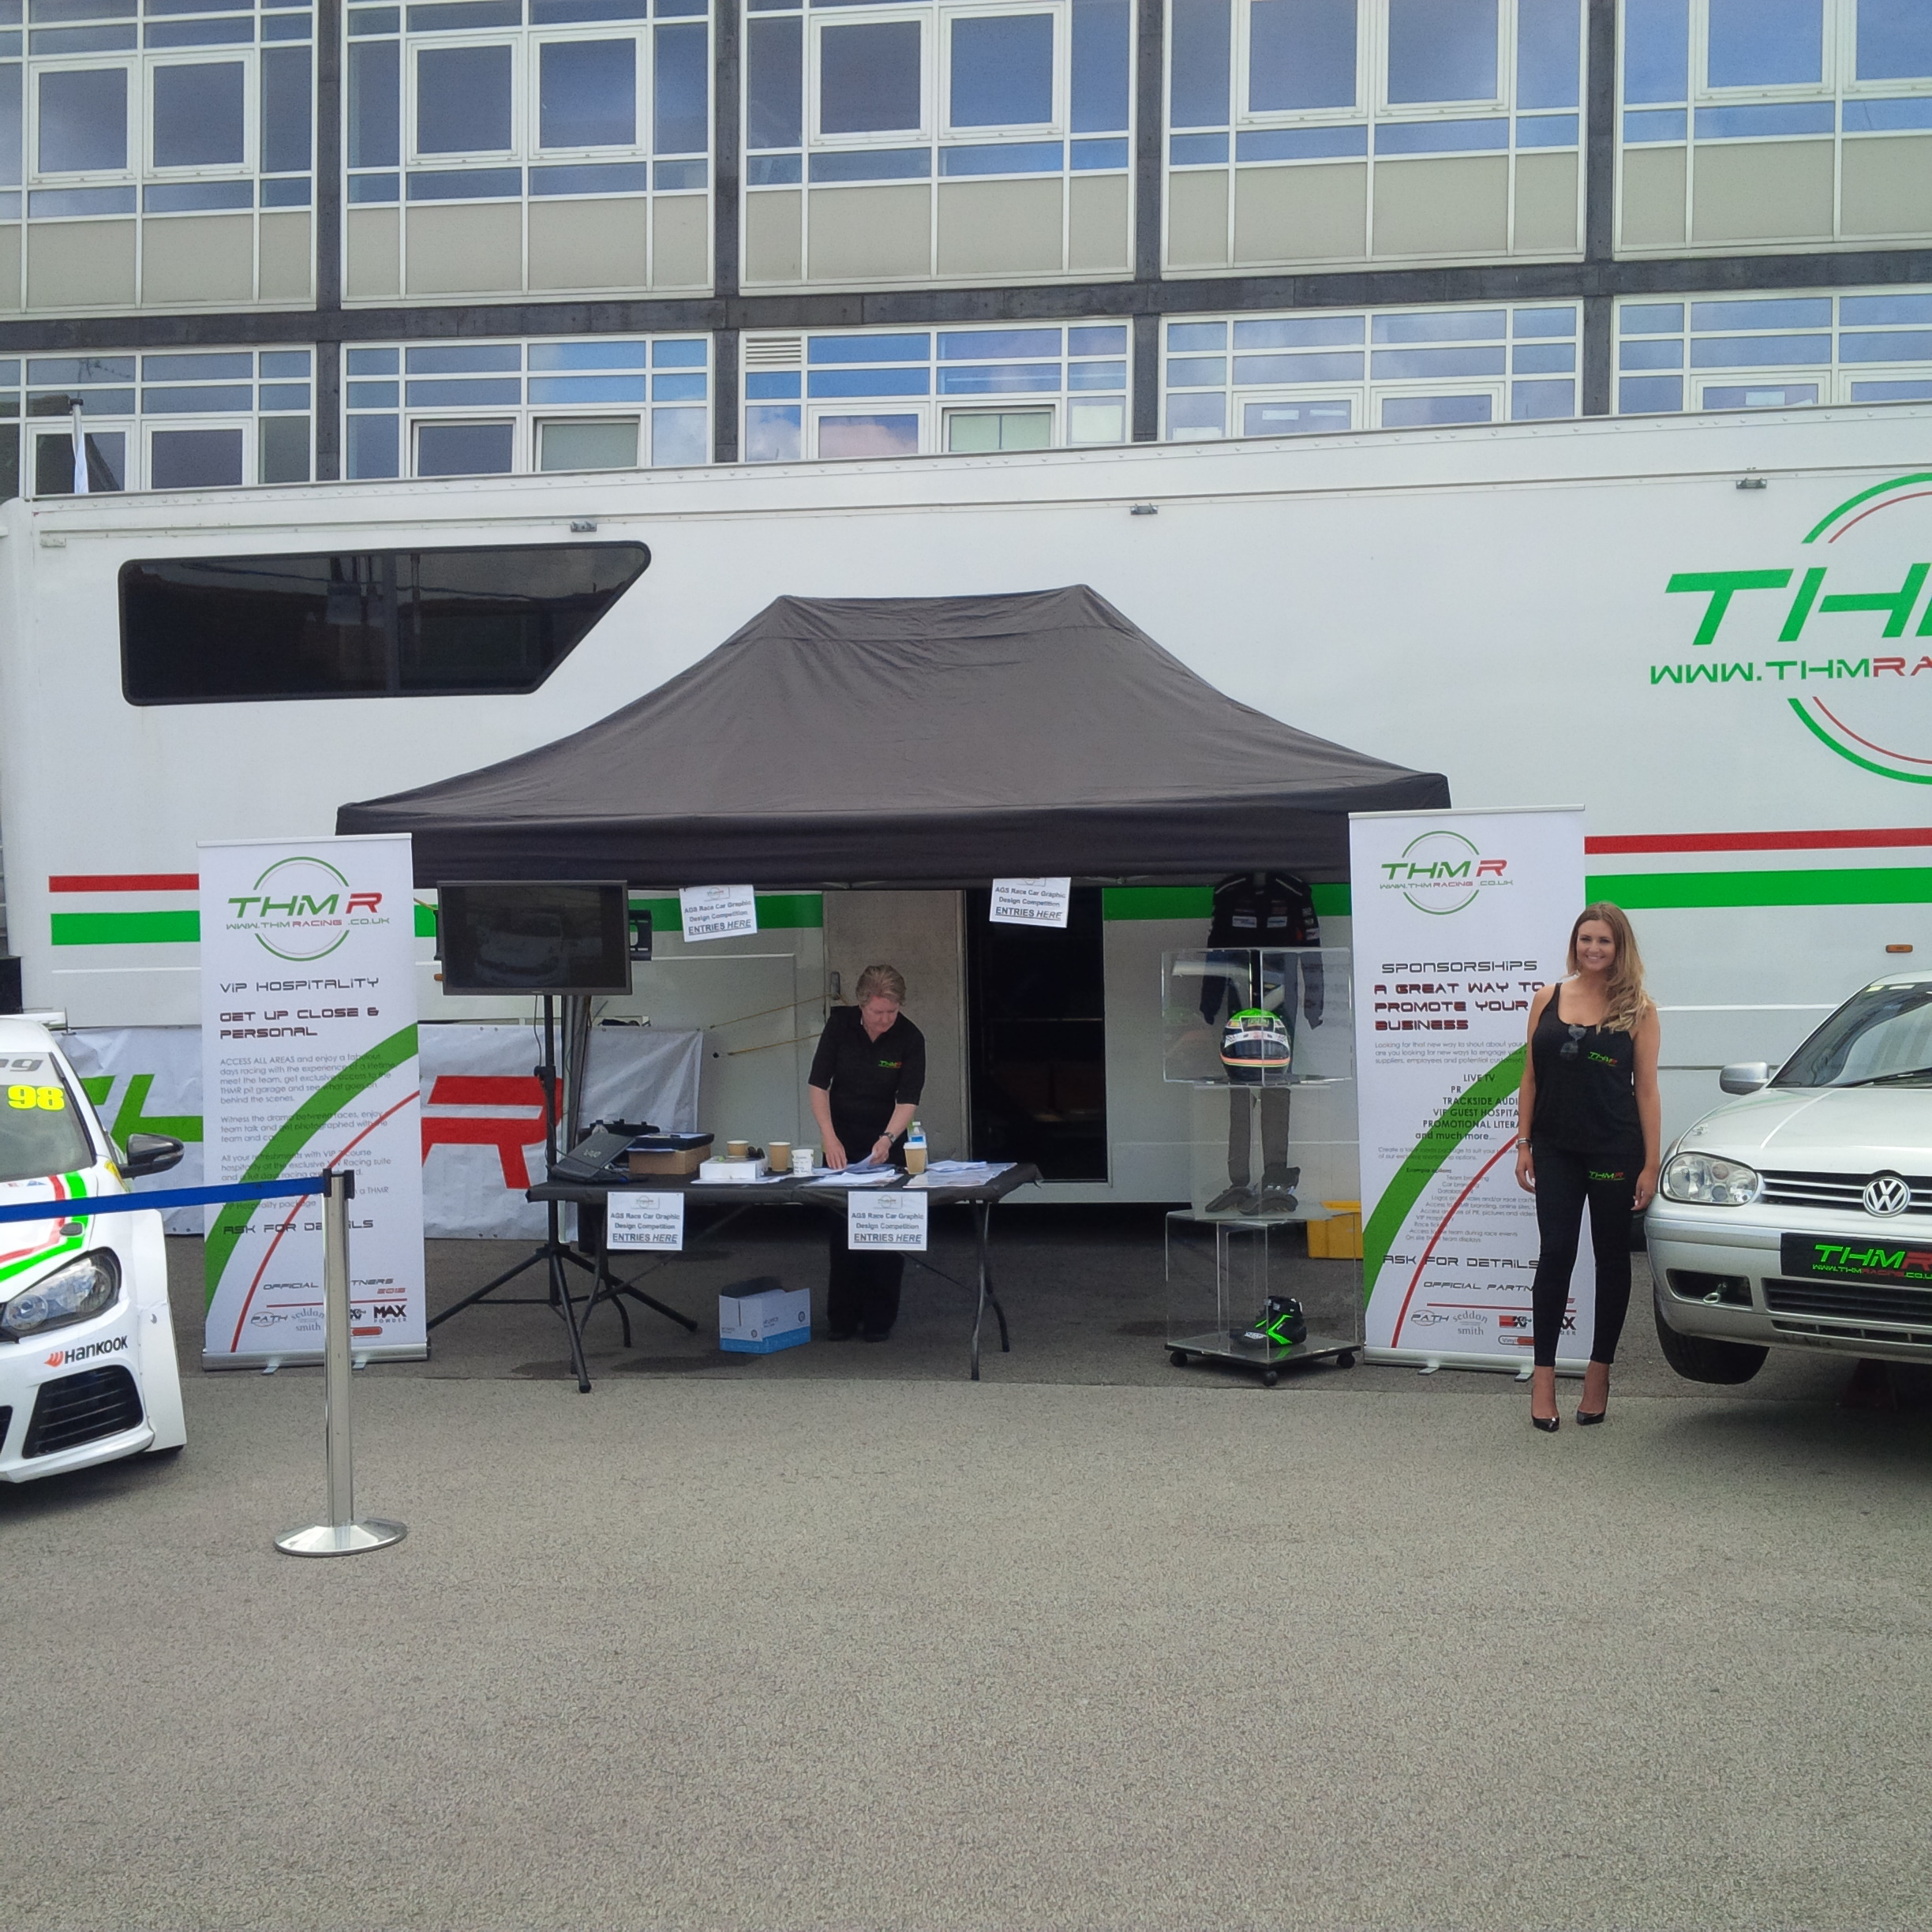 THM Racing at the Aylesbury Grammar School